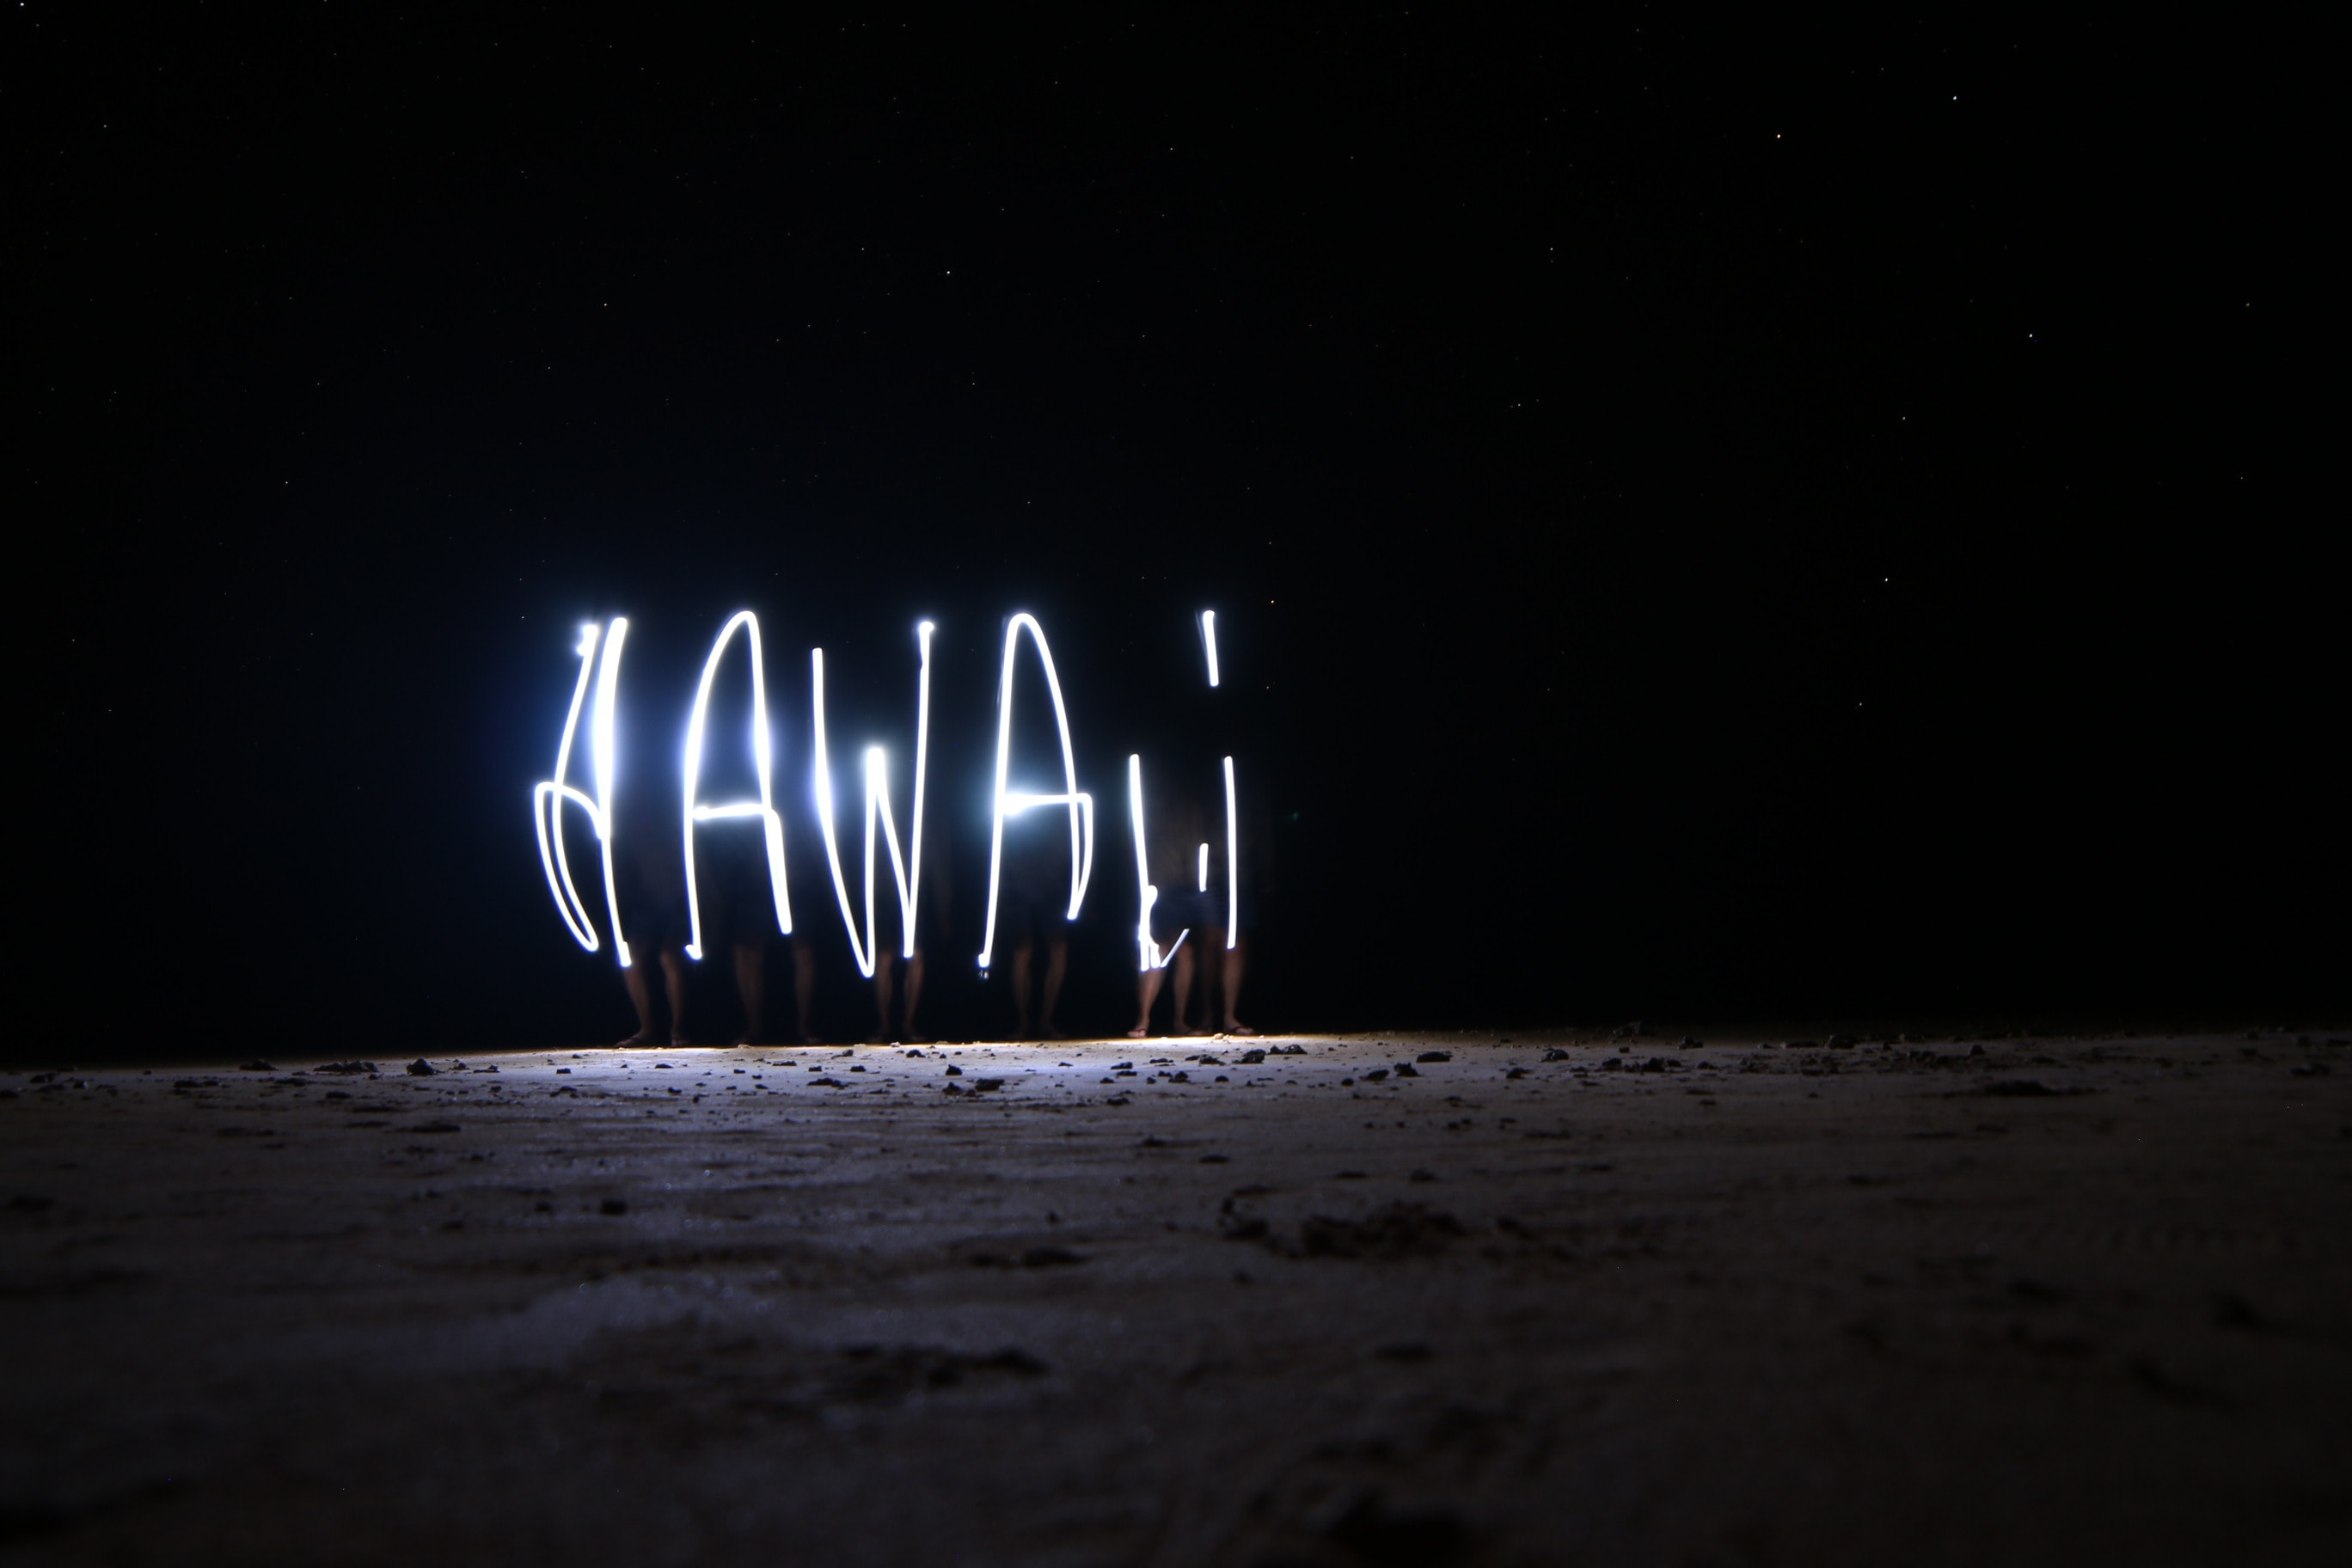 A night-time light painting that spells out HAWAII, taken on Anini Beach